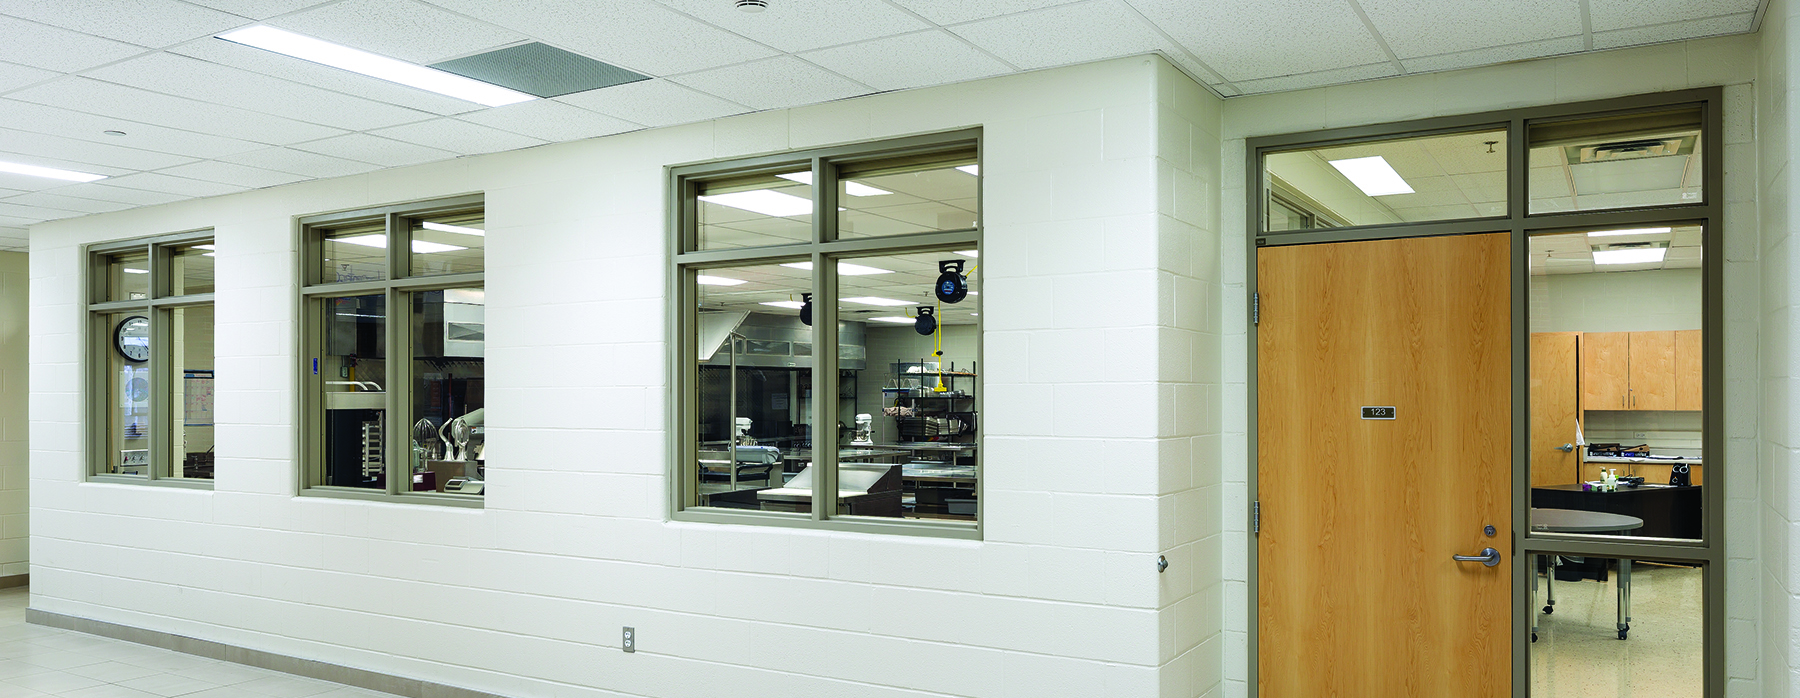 firelite® nt - fire-rated, safety-rated glass ceramic, surface